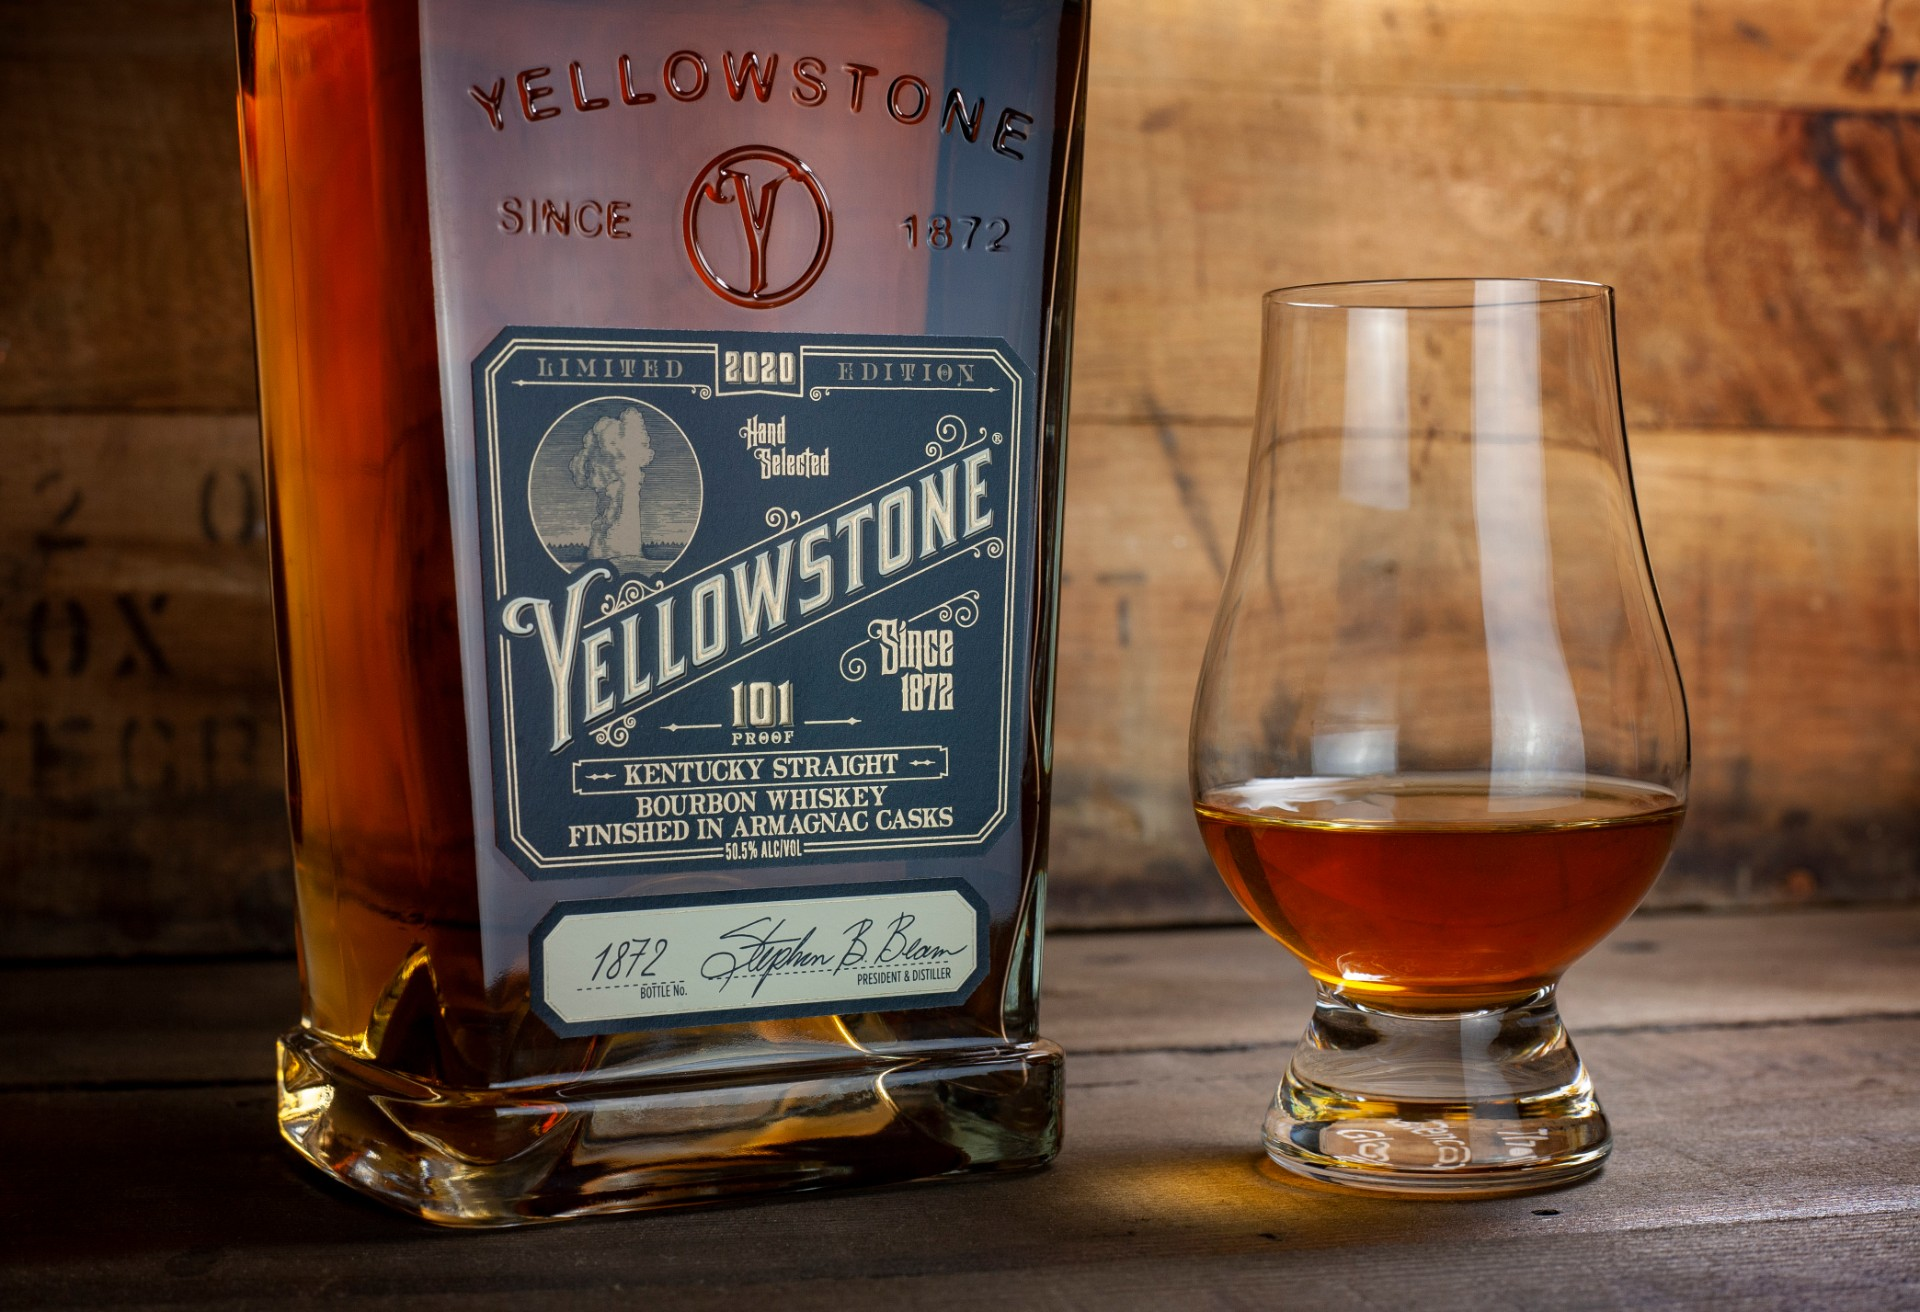 Limestone Branch Introduces the New 2020 Yellowstone Limited Edition